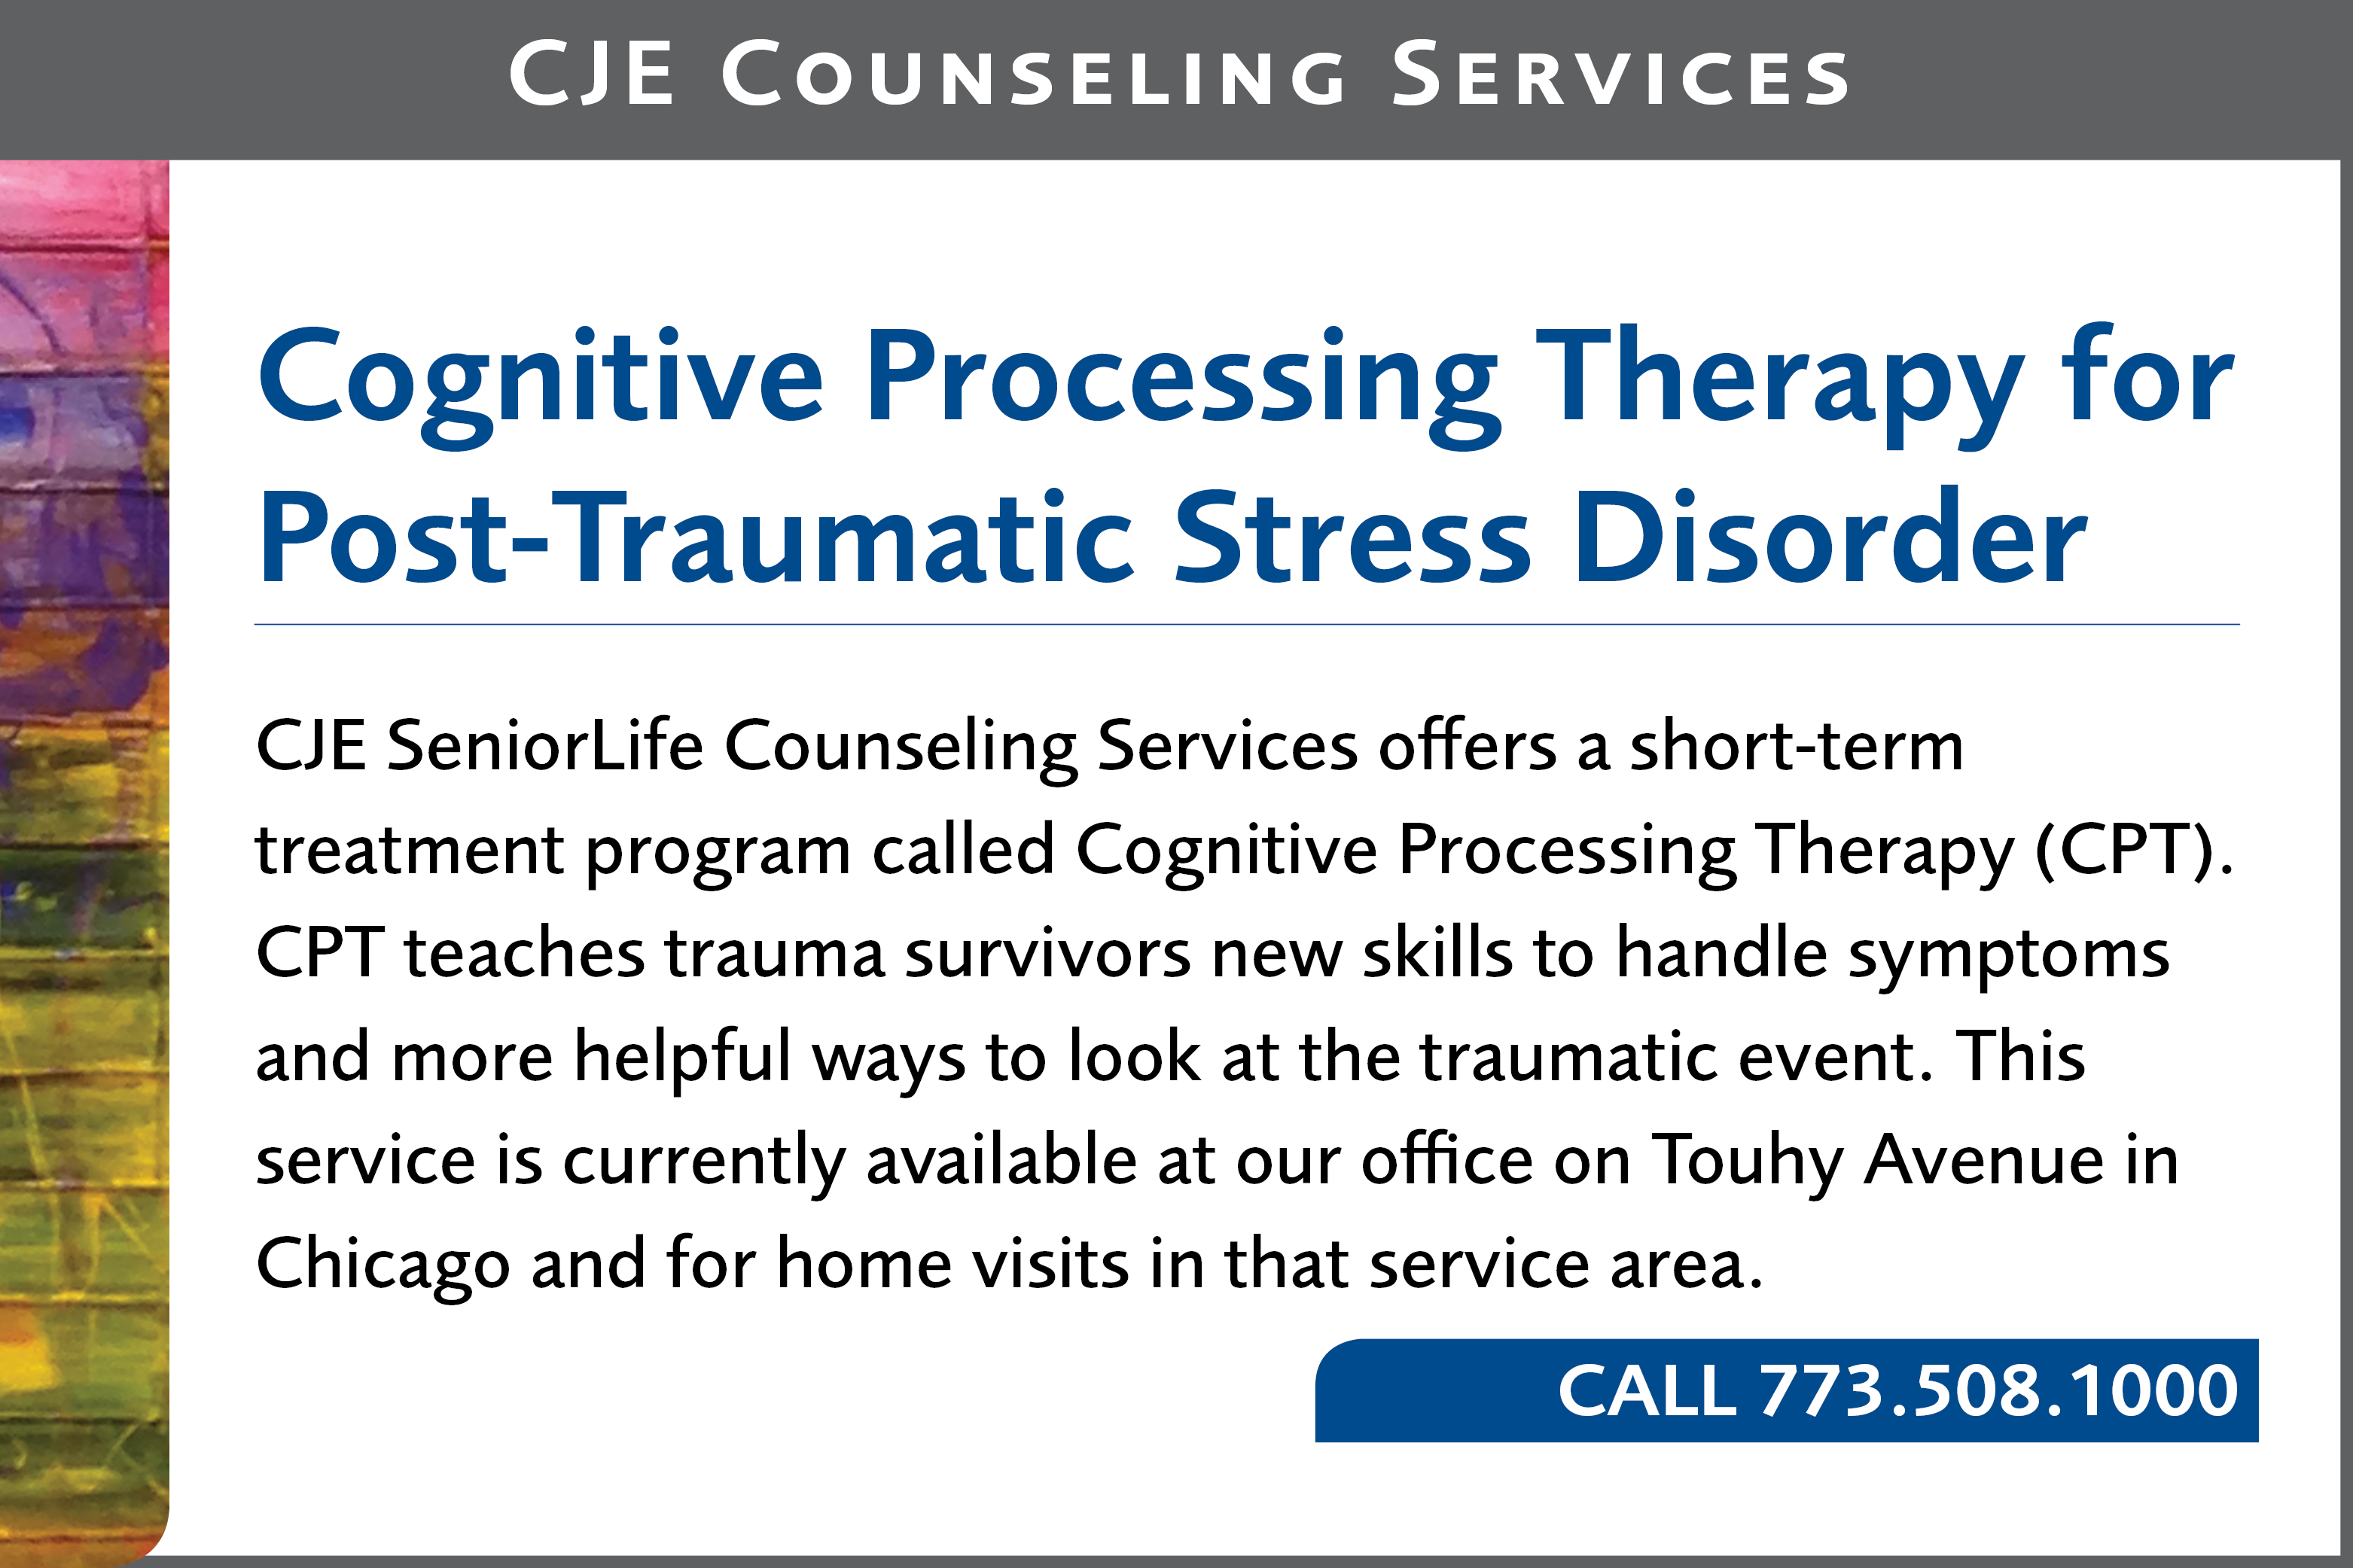 Cognitive Processing Therapy for Post-Traumatic Stress Disorder